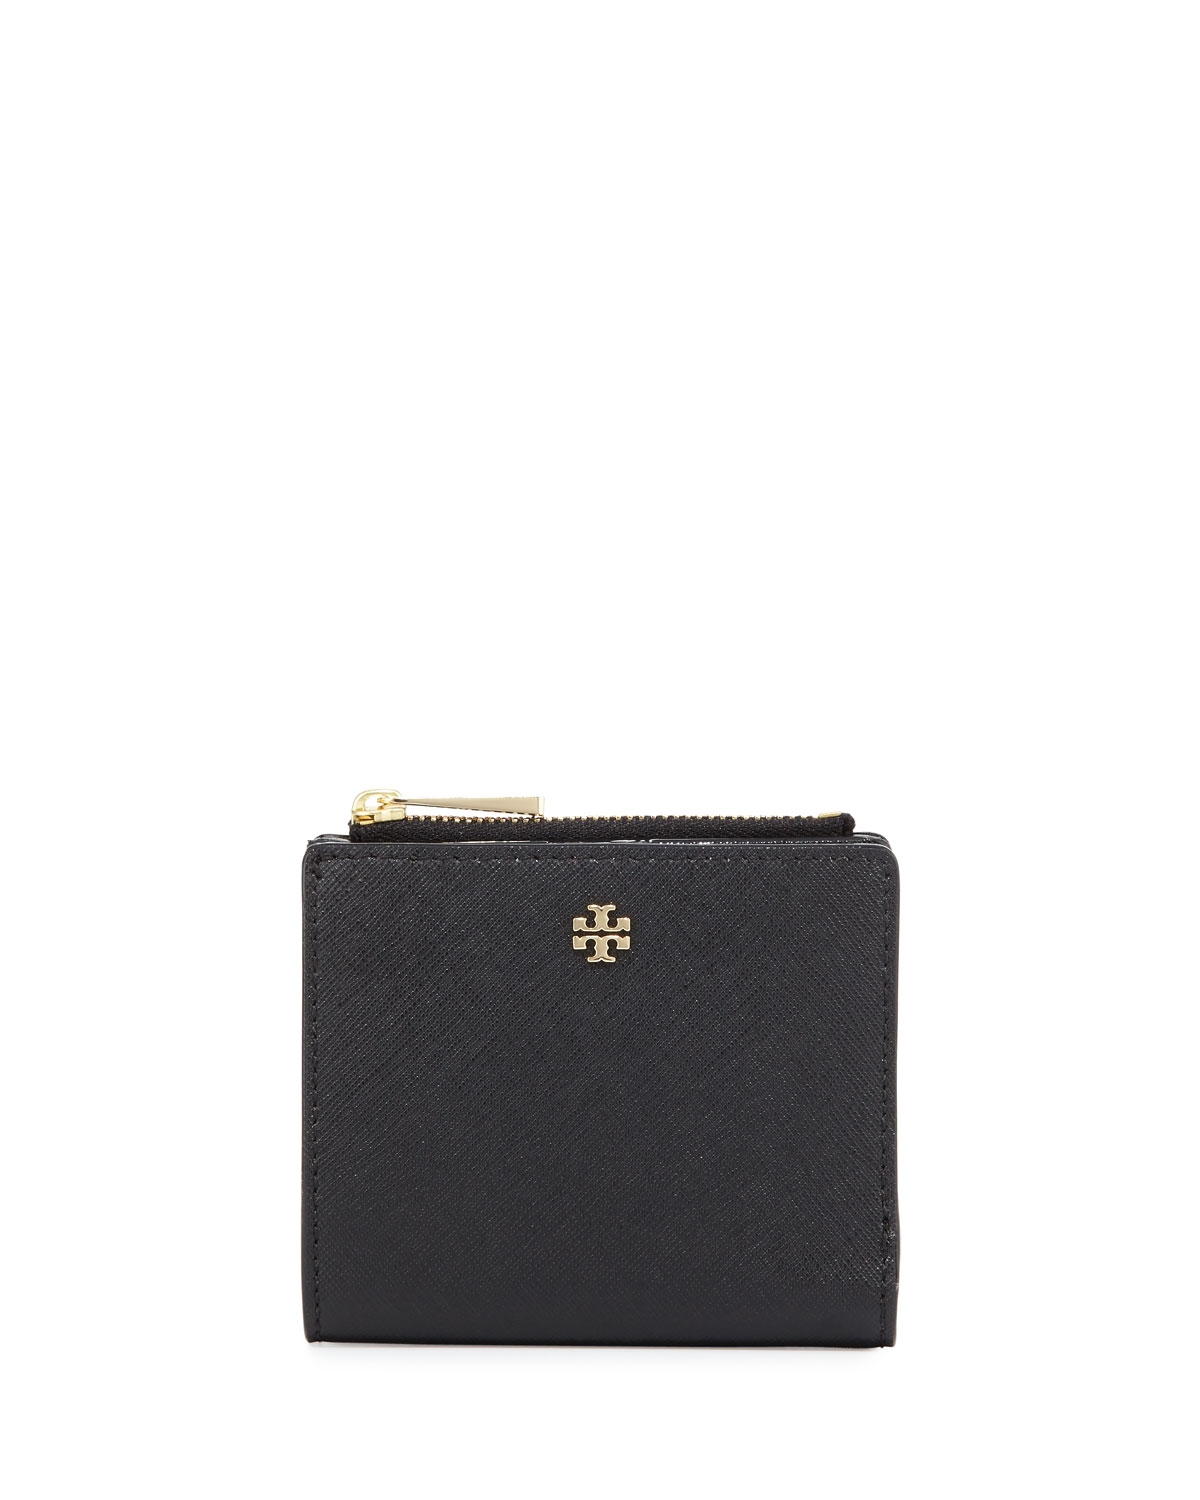 1a1a0fdf987 Tory Burch Robinson Leather Mini Wallet